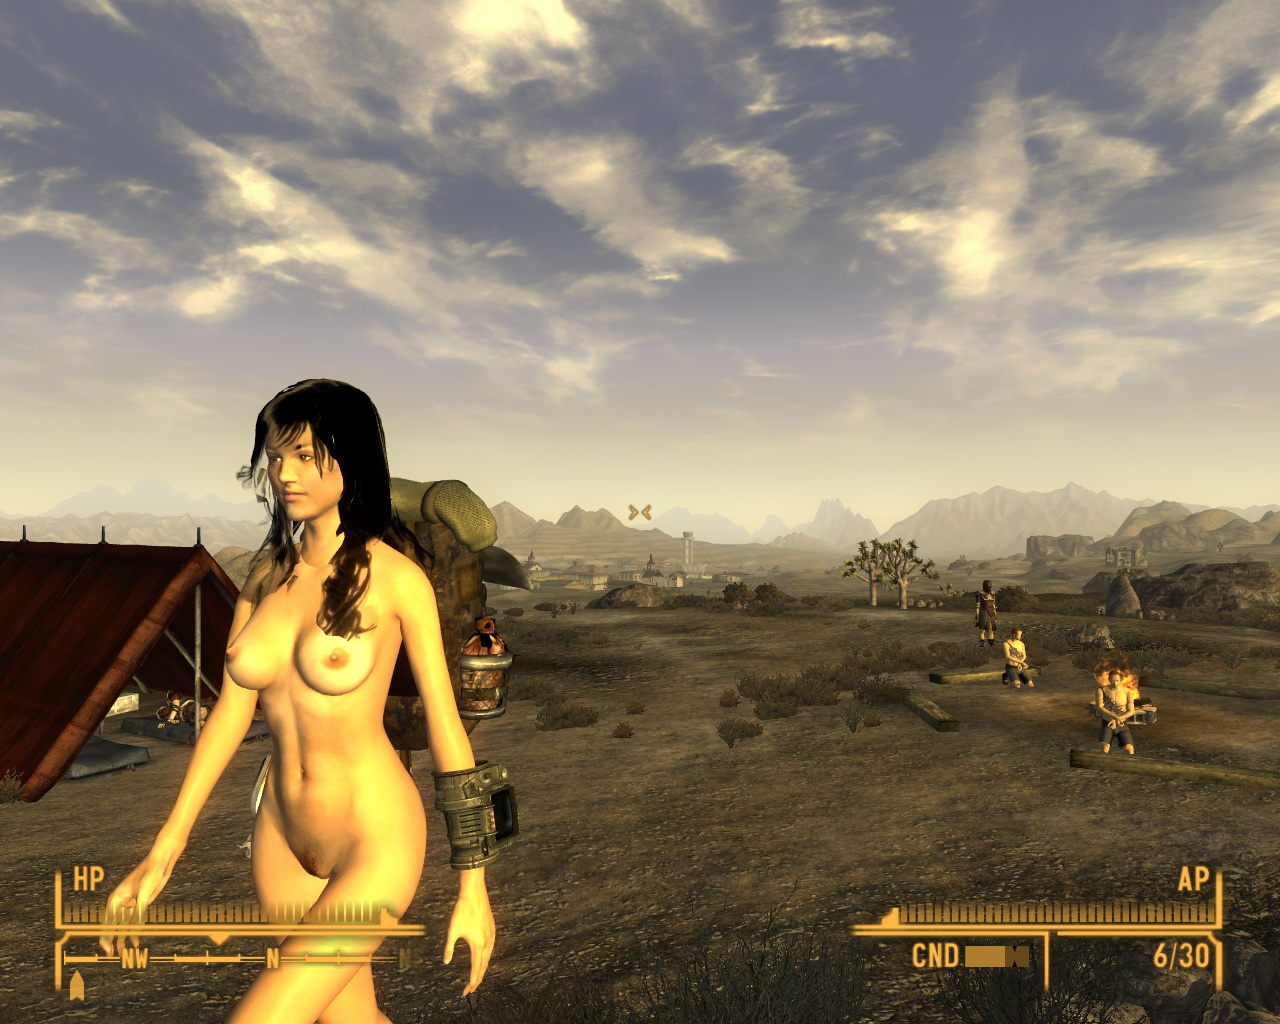 Kendra, fallout nude patch spread